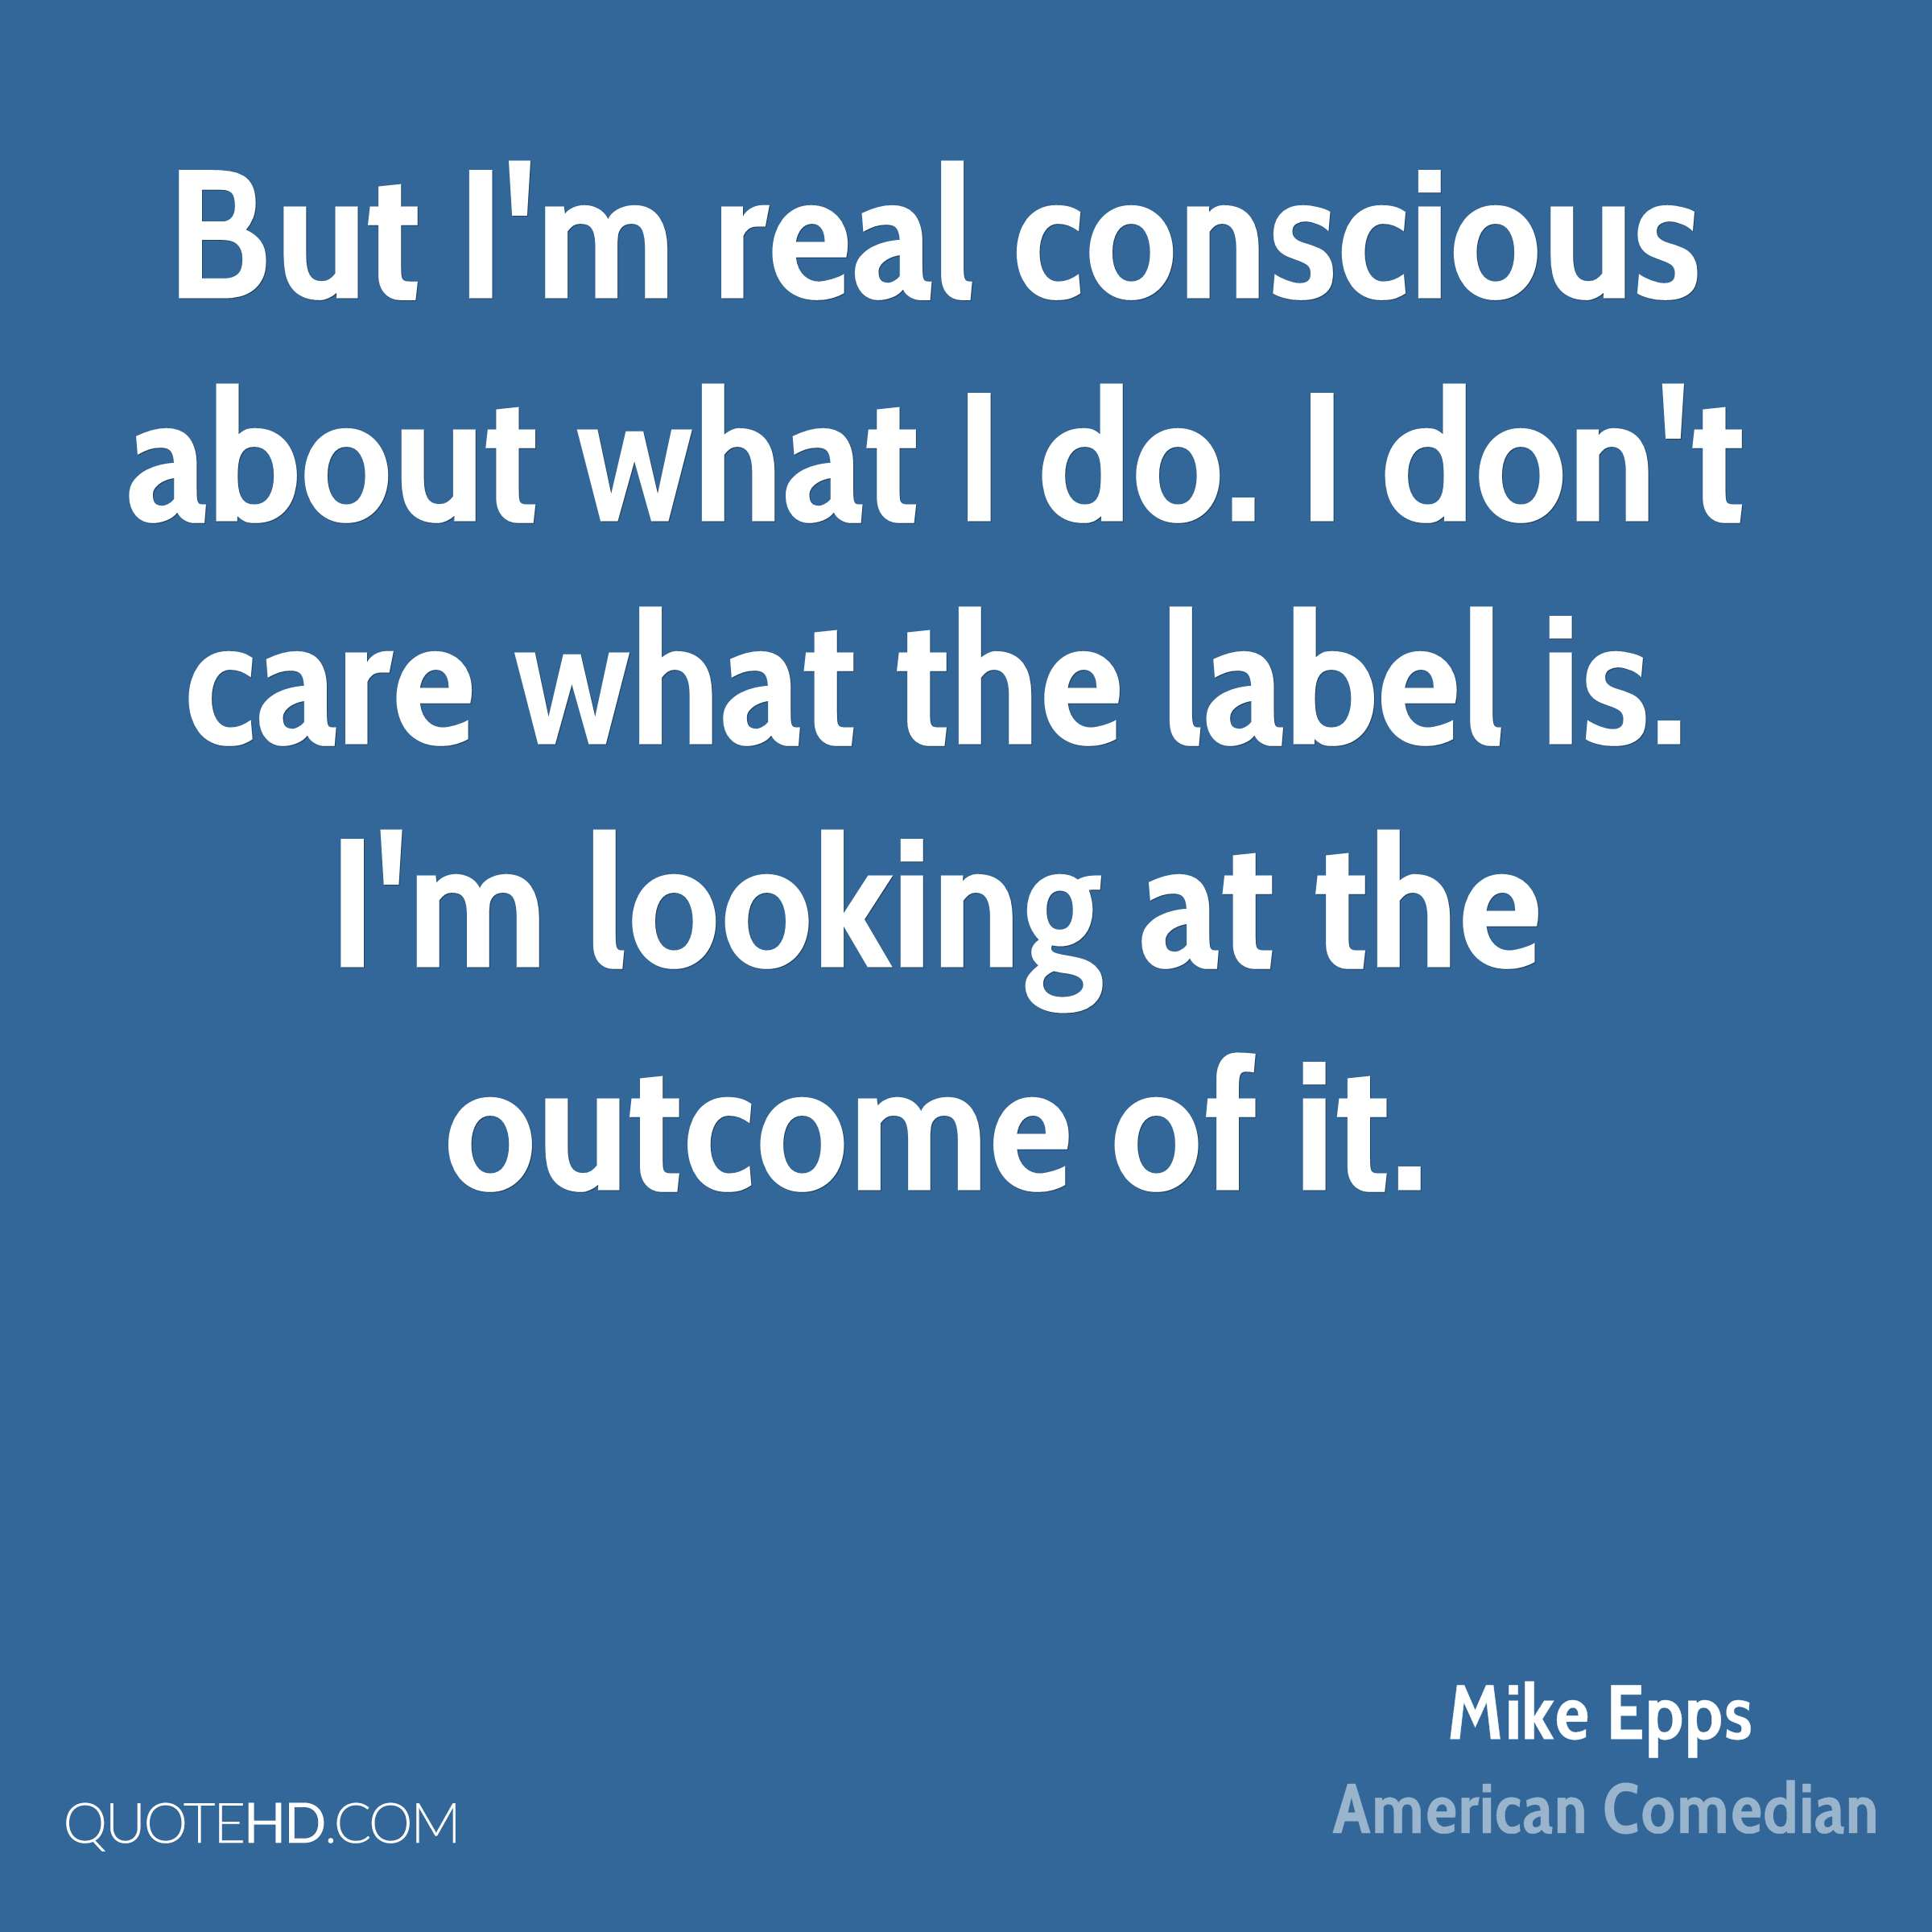 But I'm real conscious about what I do. I don't care what the label is. I'm looking at the outcome of it.